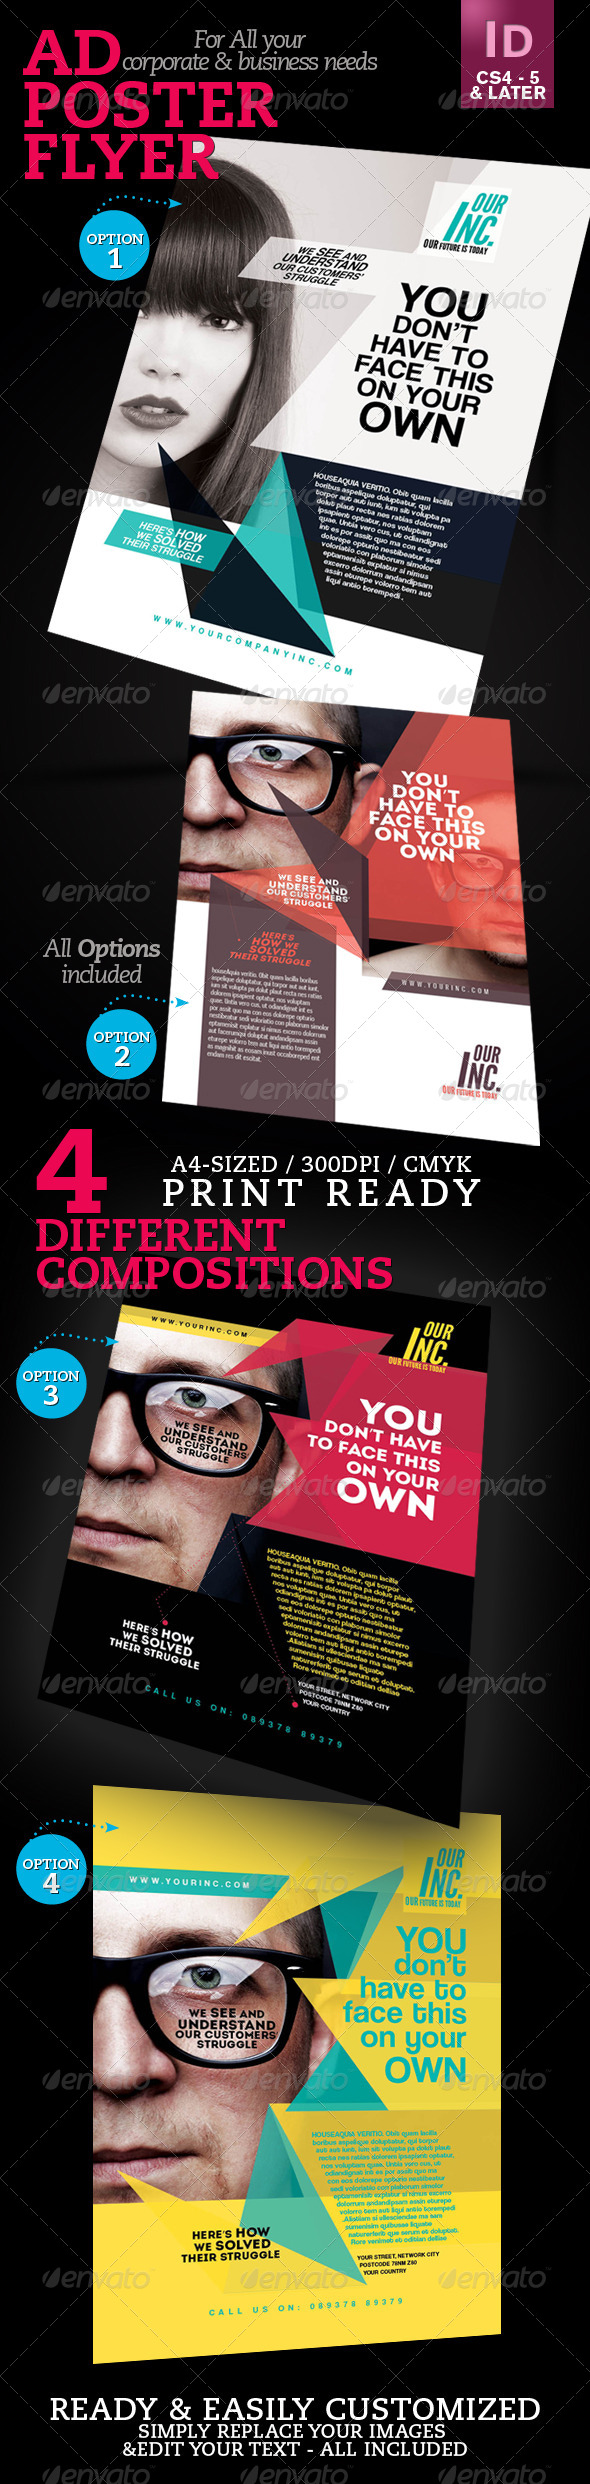 Corporate Ad / Flyer / Poster V1 - Corporate Flyers